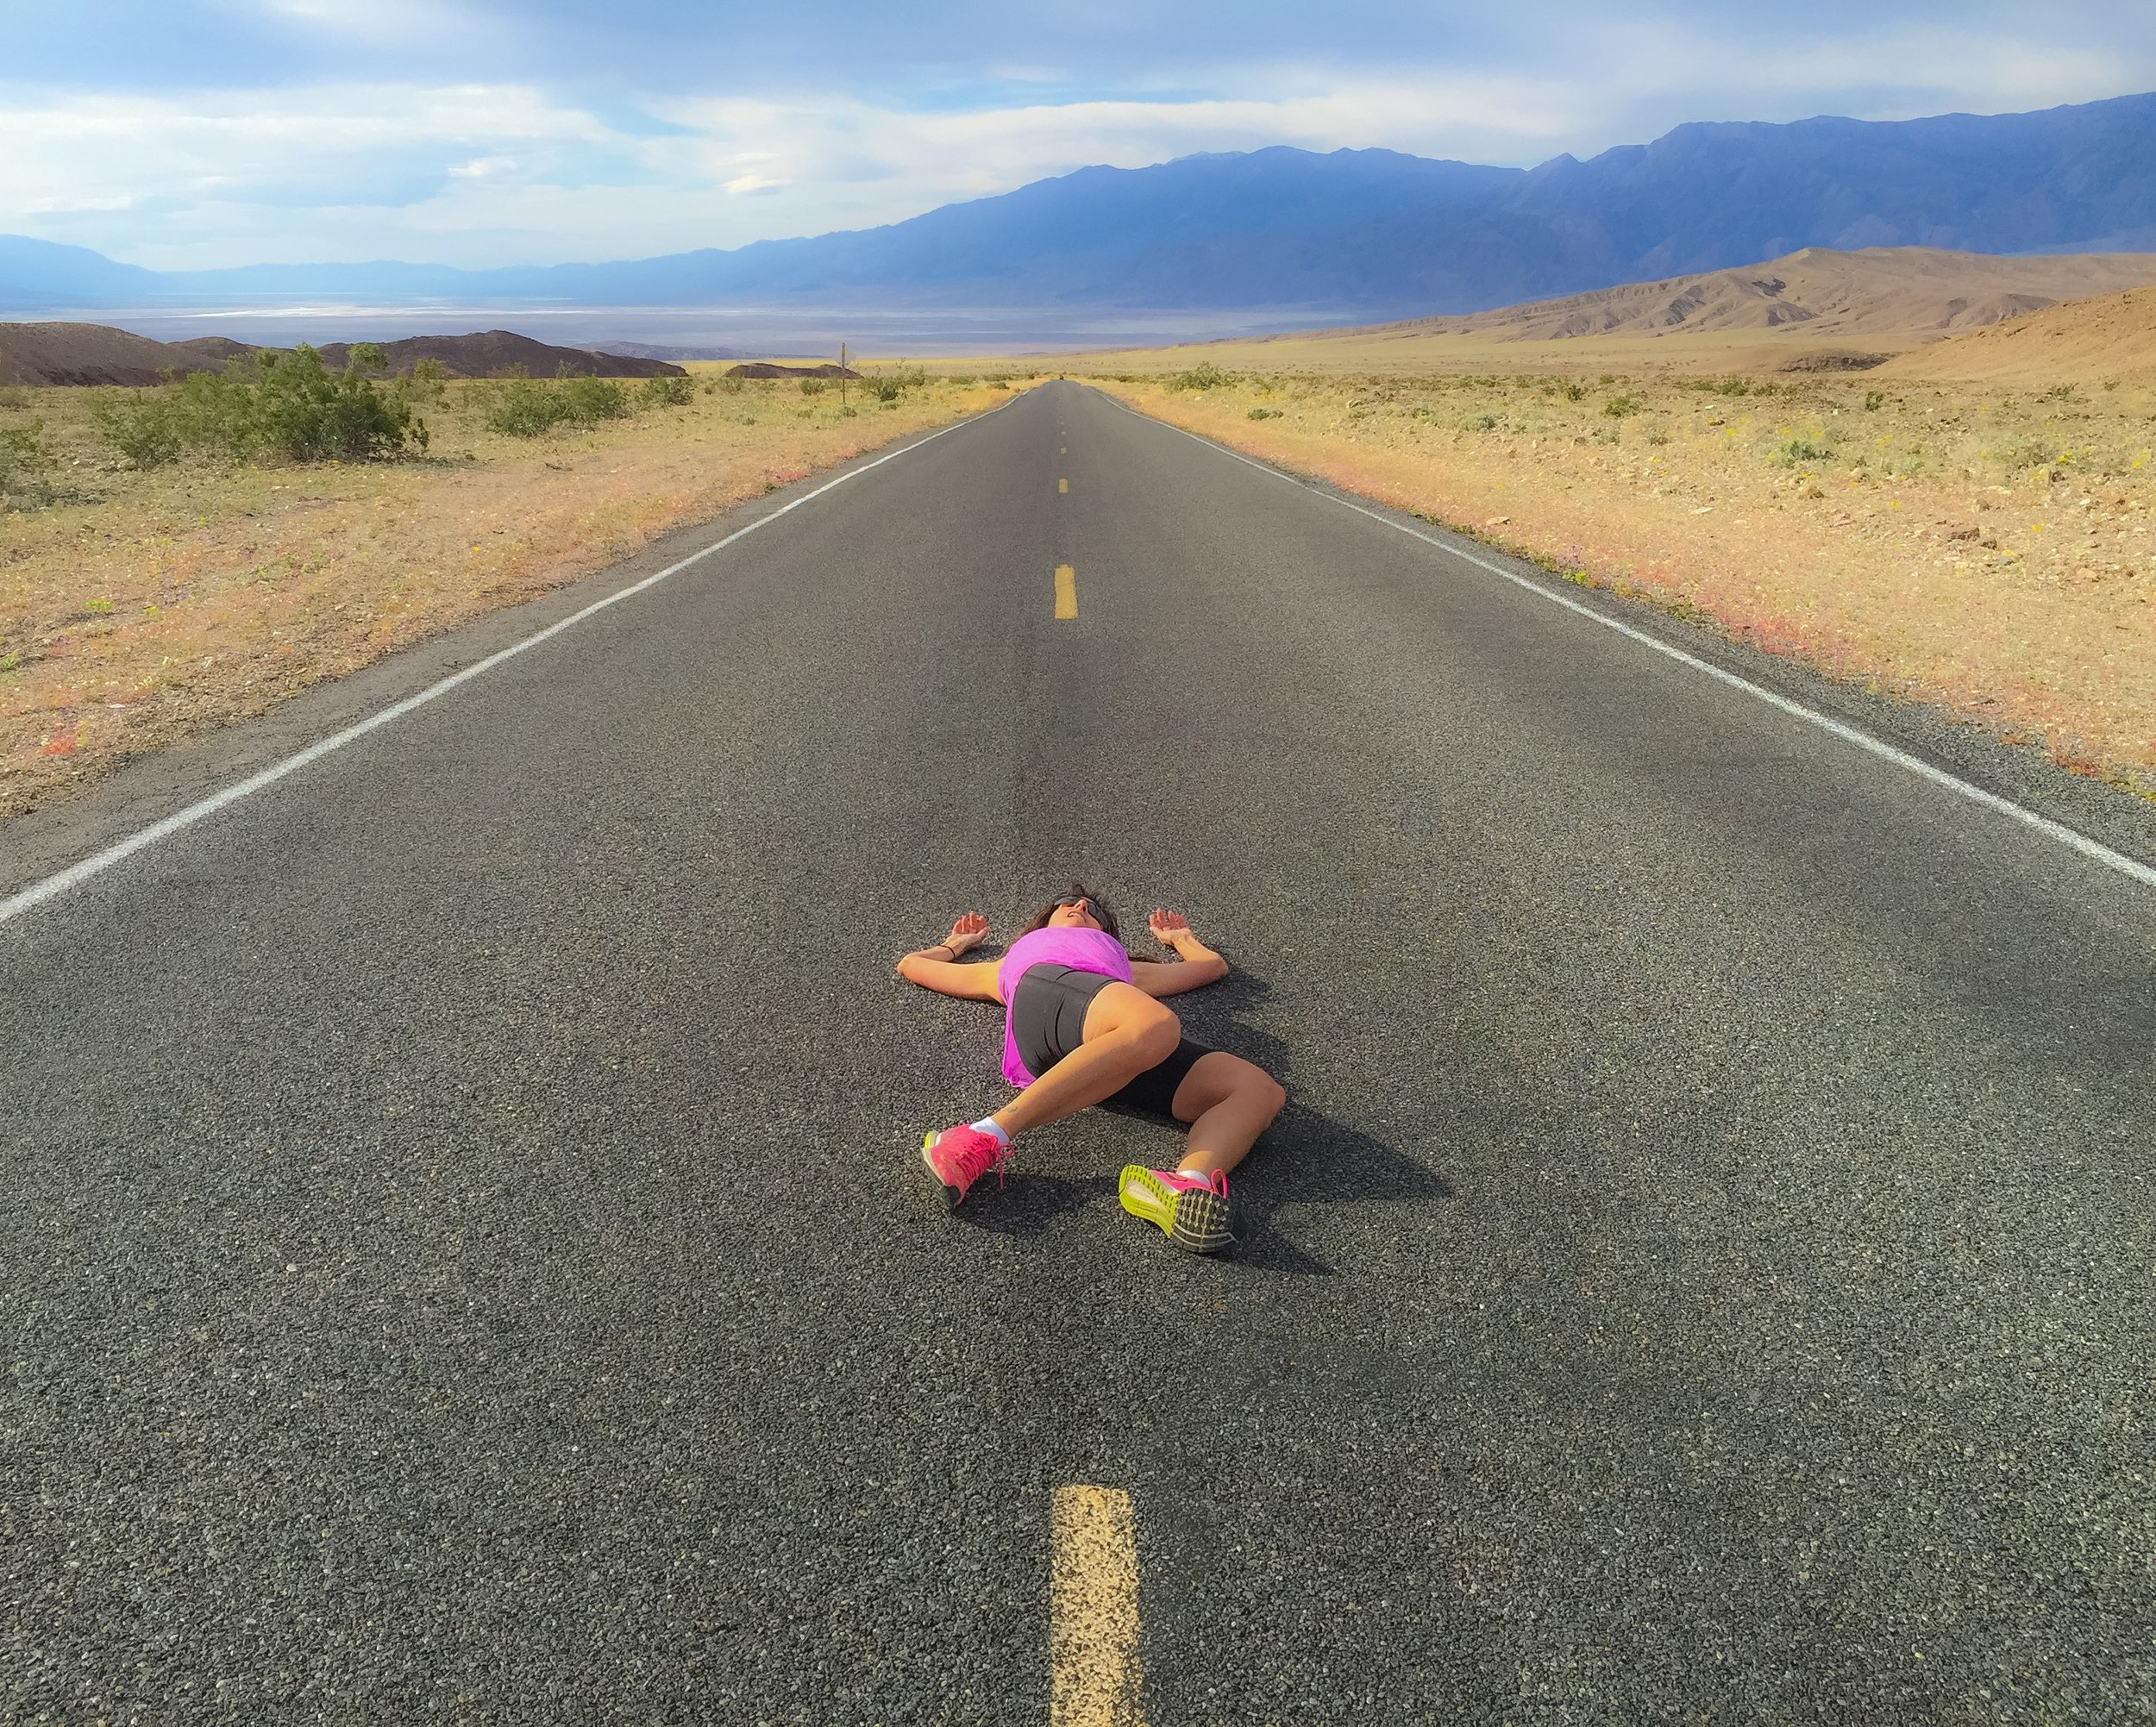 CJ Zahner on the road to death valley (1).JPG